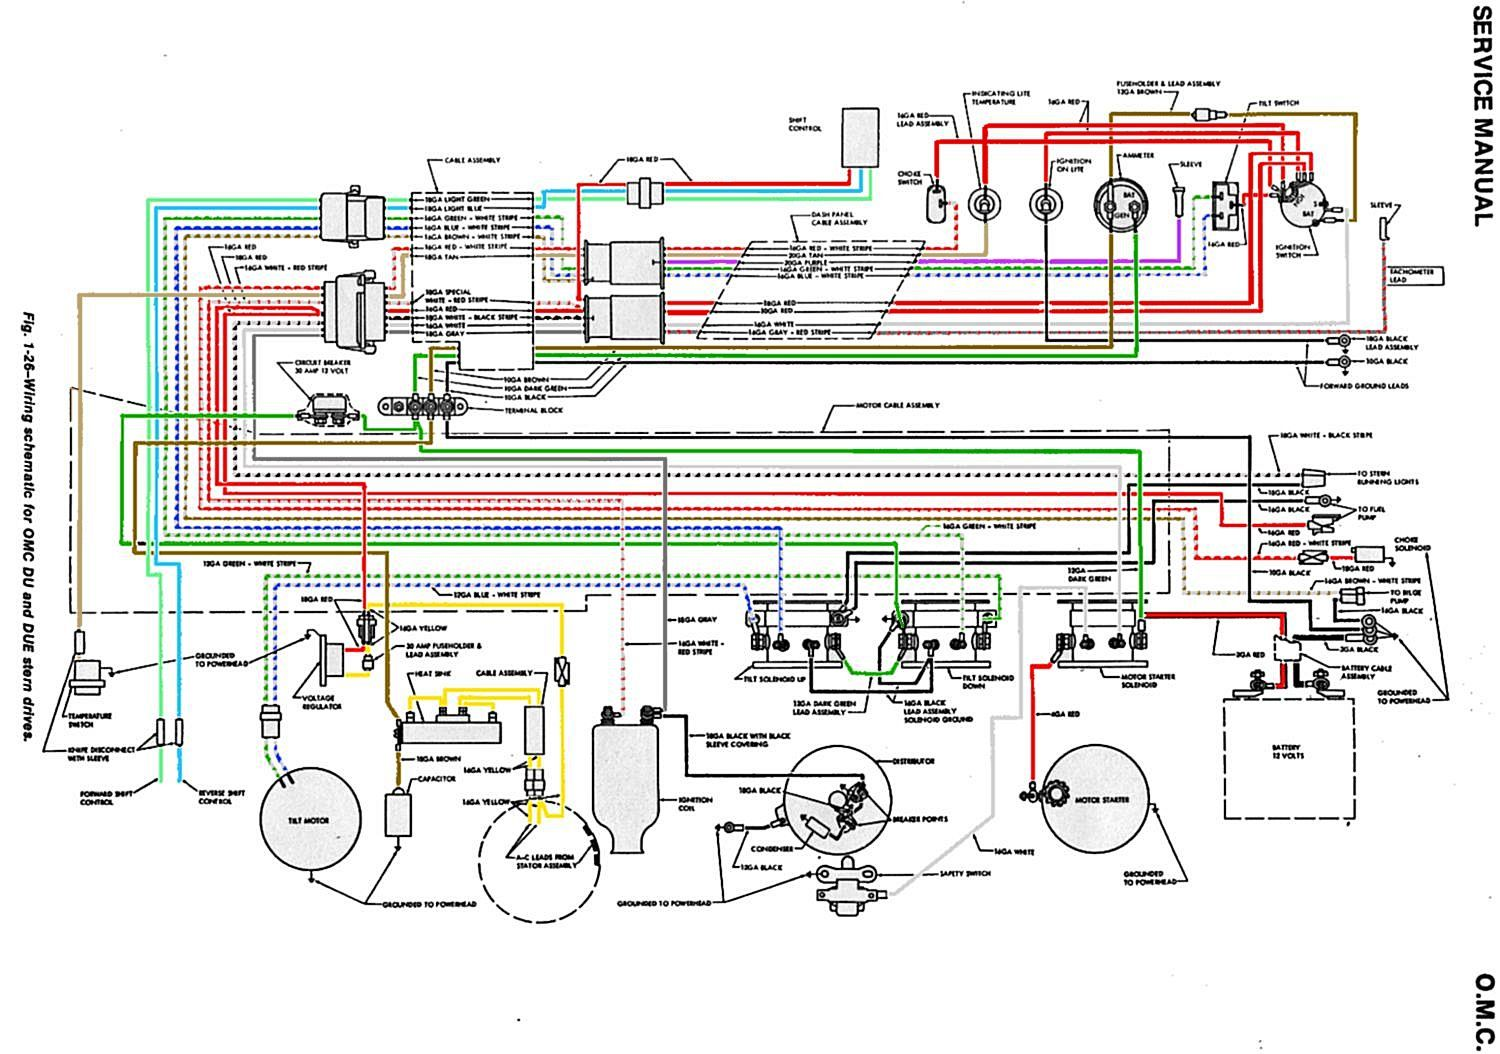 Omc 3 8 Gm Engine Diagram - wiring diagram switches-center -  switches-center.teglieromane.itTeglie Romane